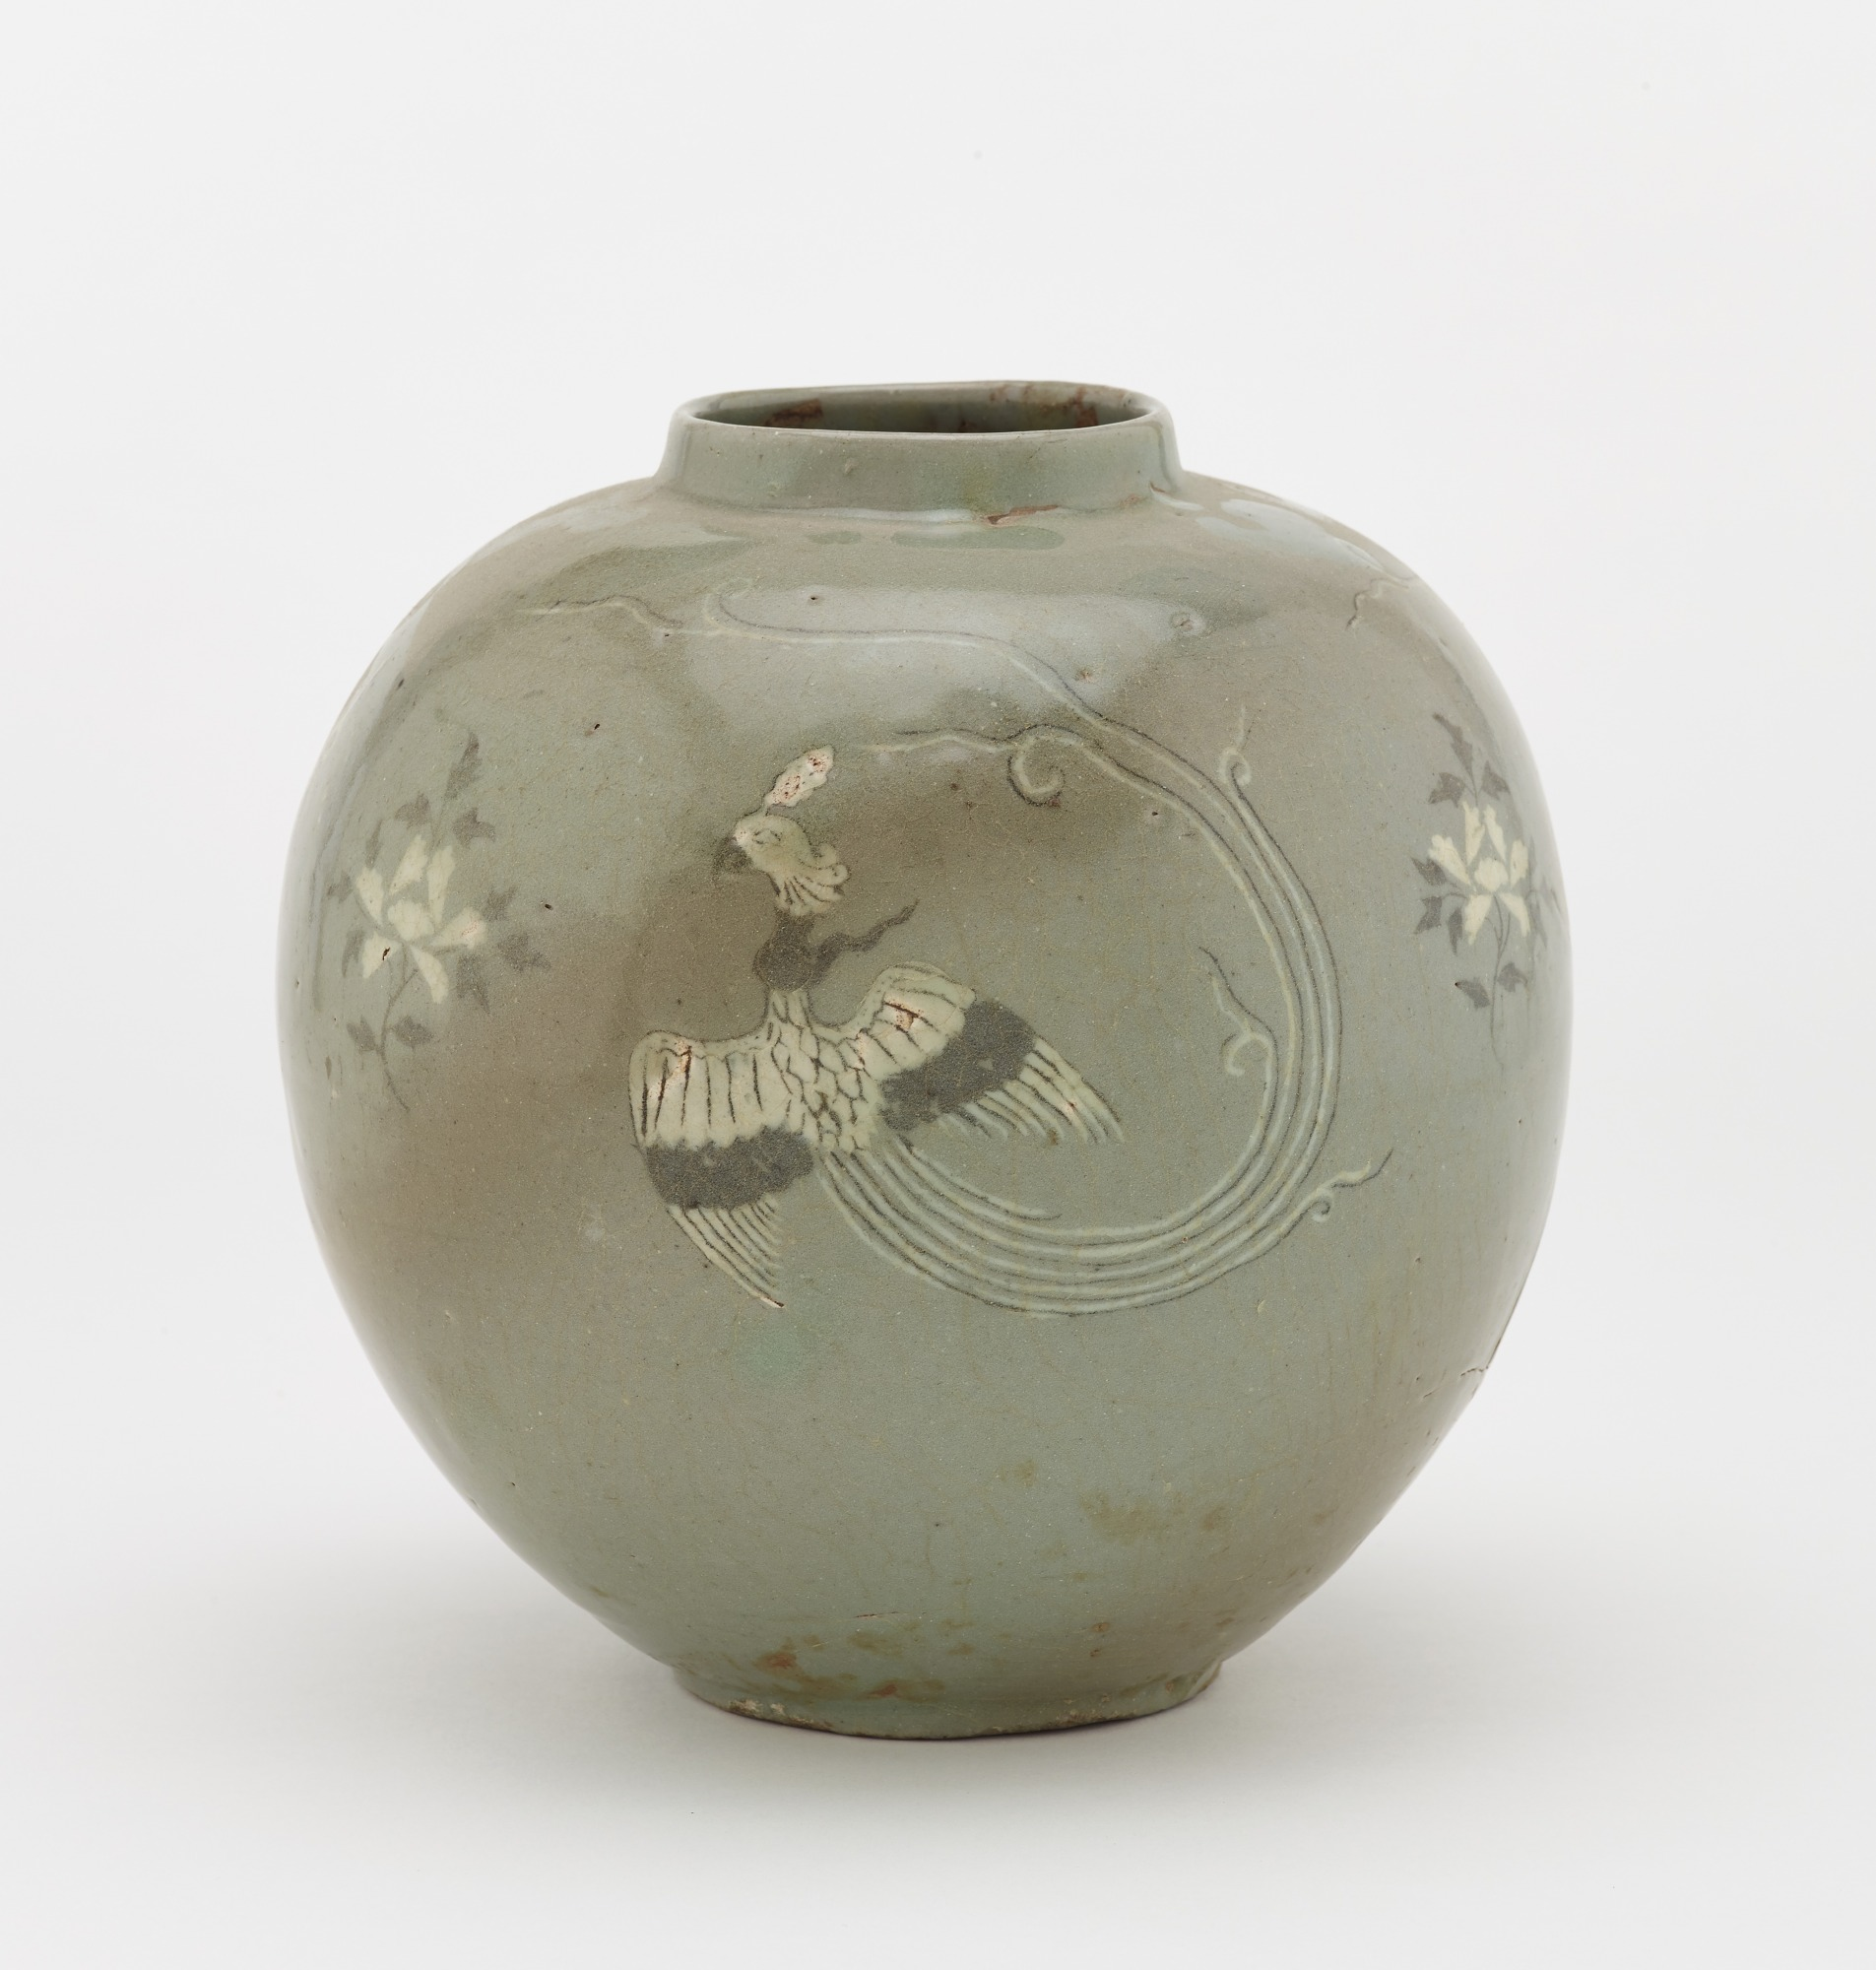 Jar with inlaid design of three phoenixes, profile